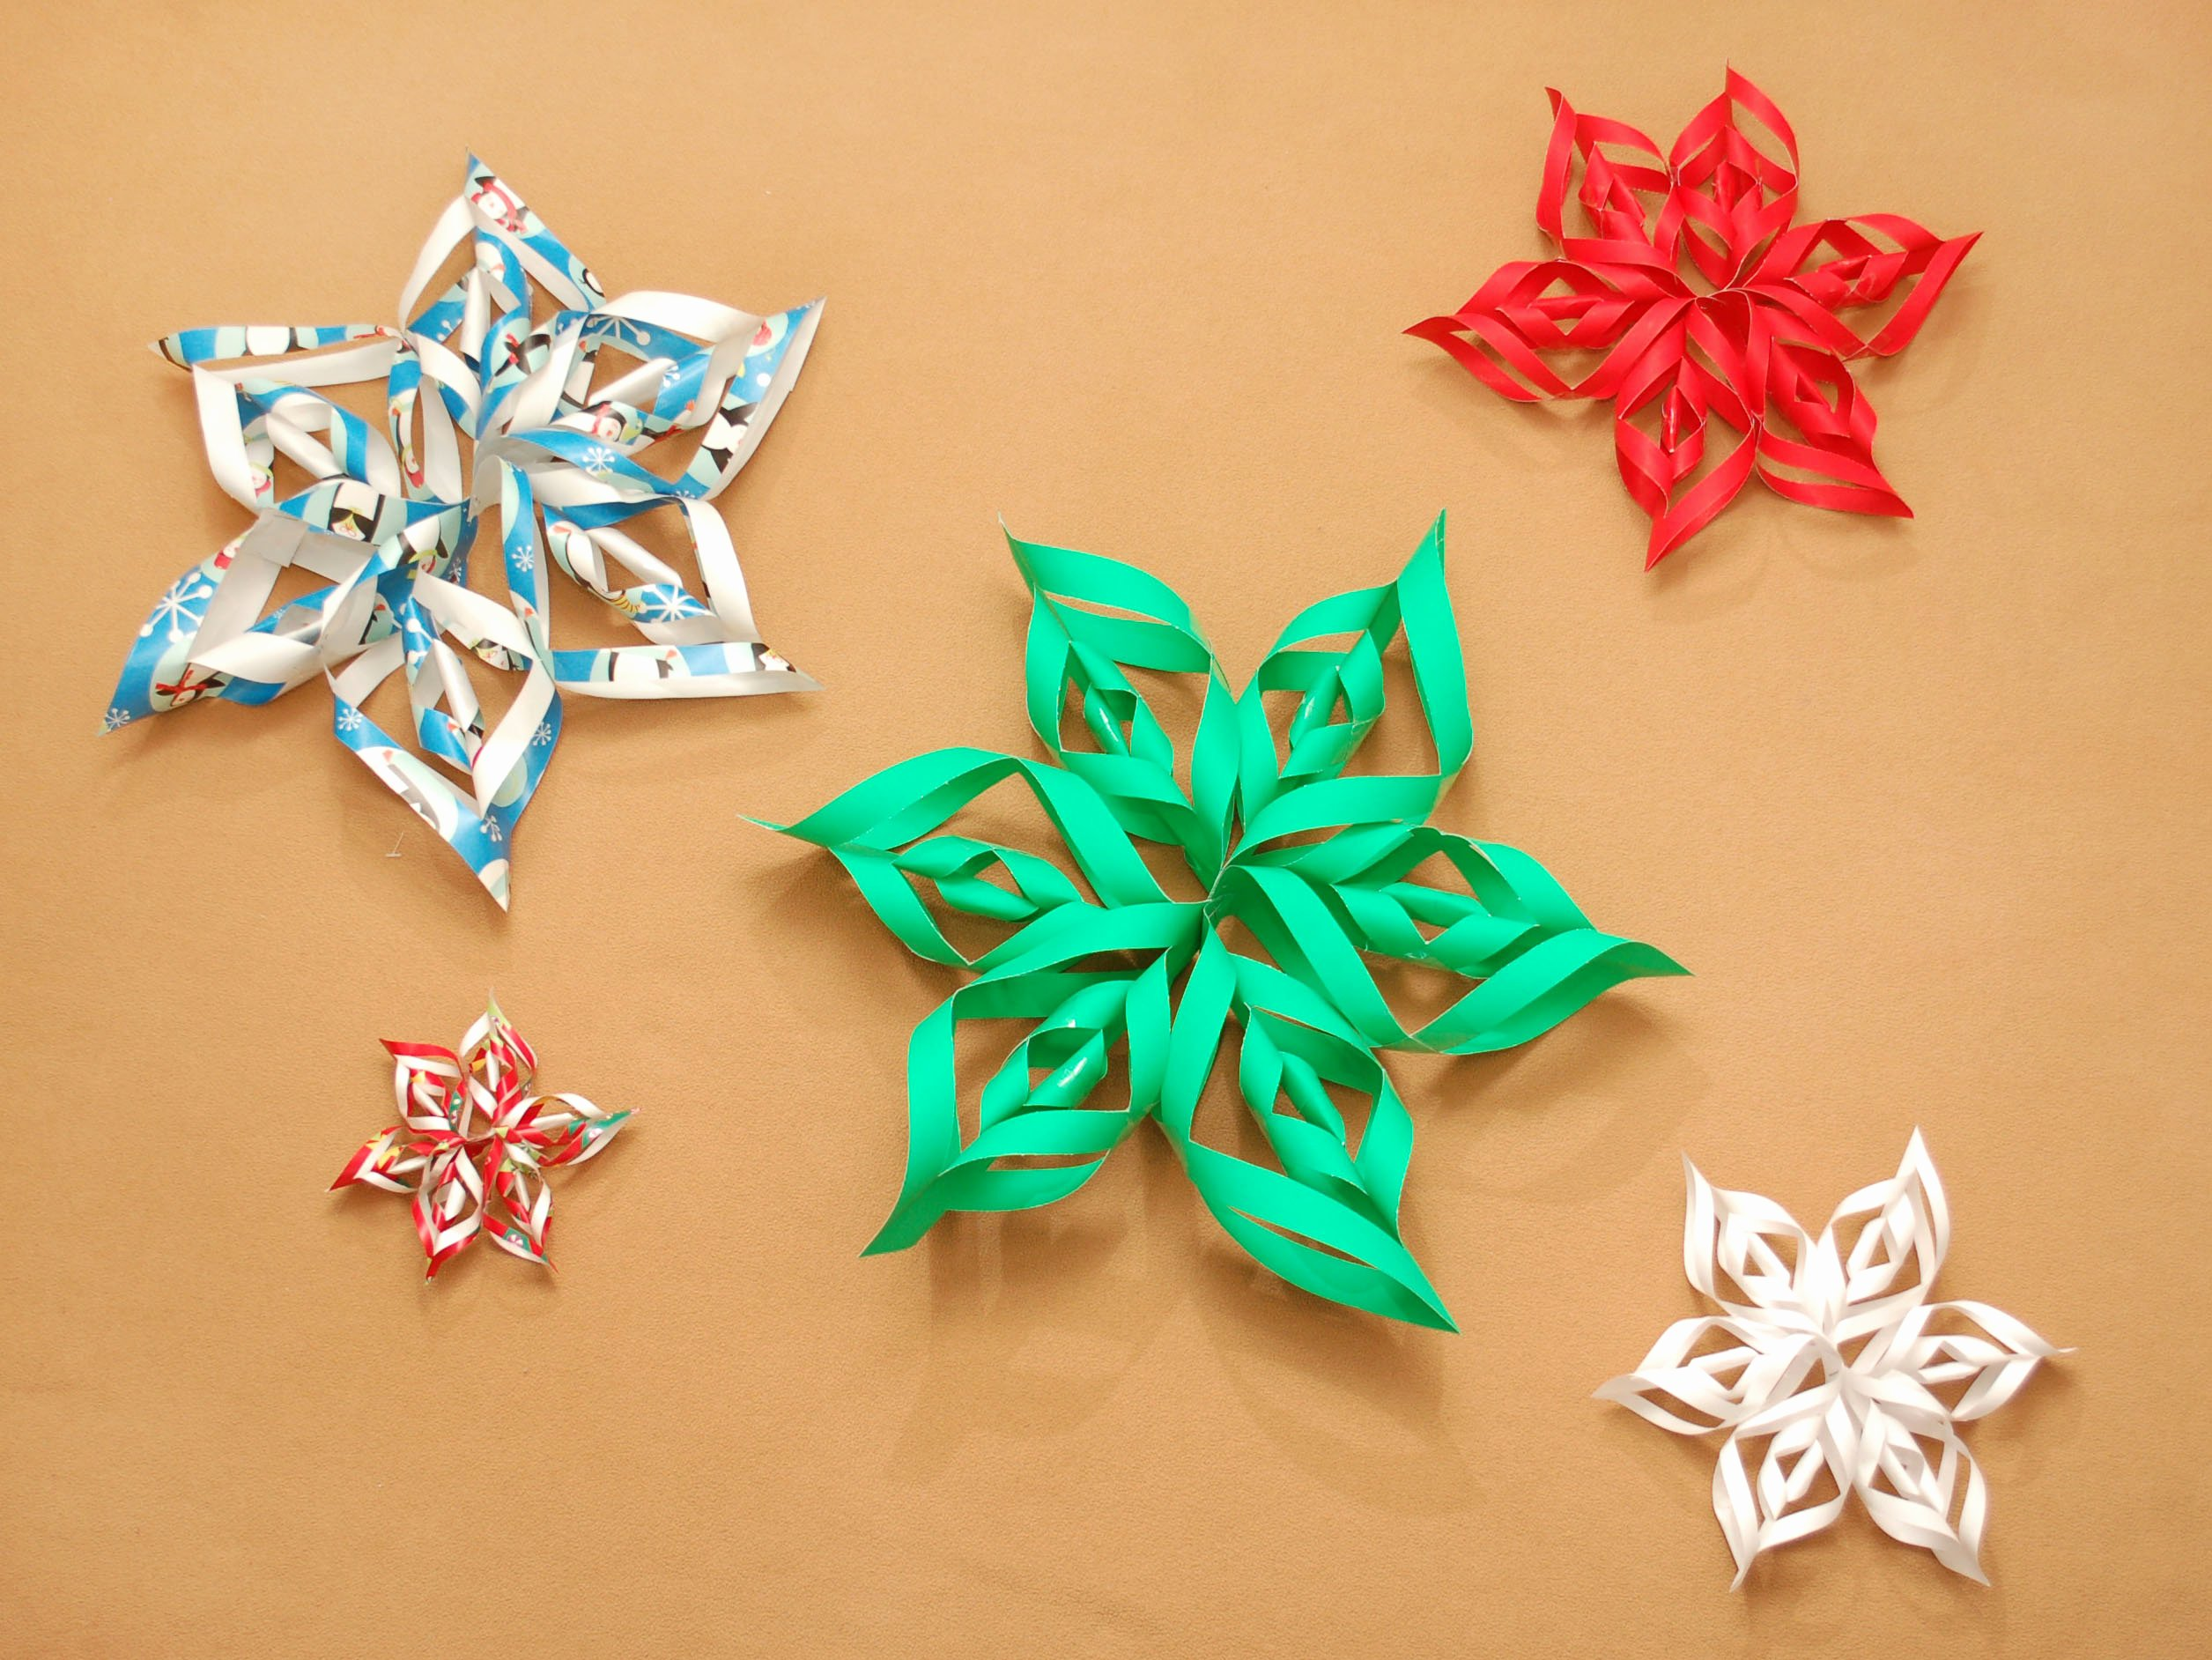 How to Make 3d Snowflakes New How to Make A 3d Paper Snowflake 12 Steps with